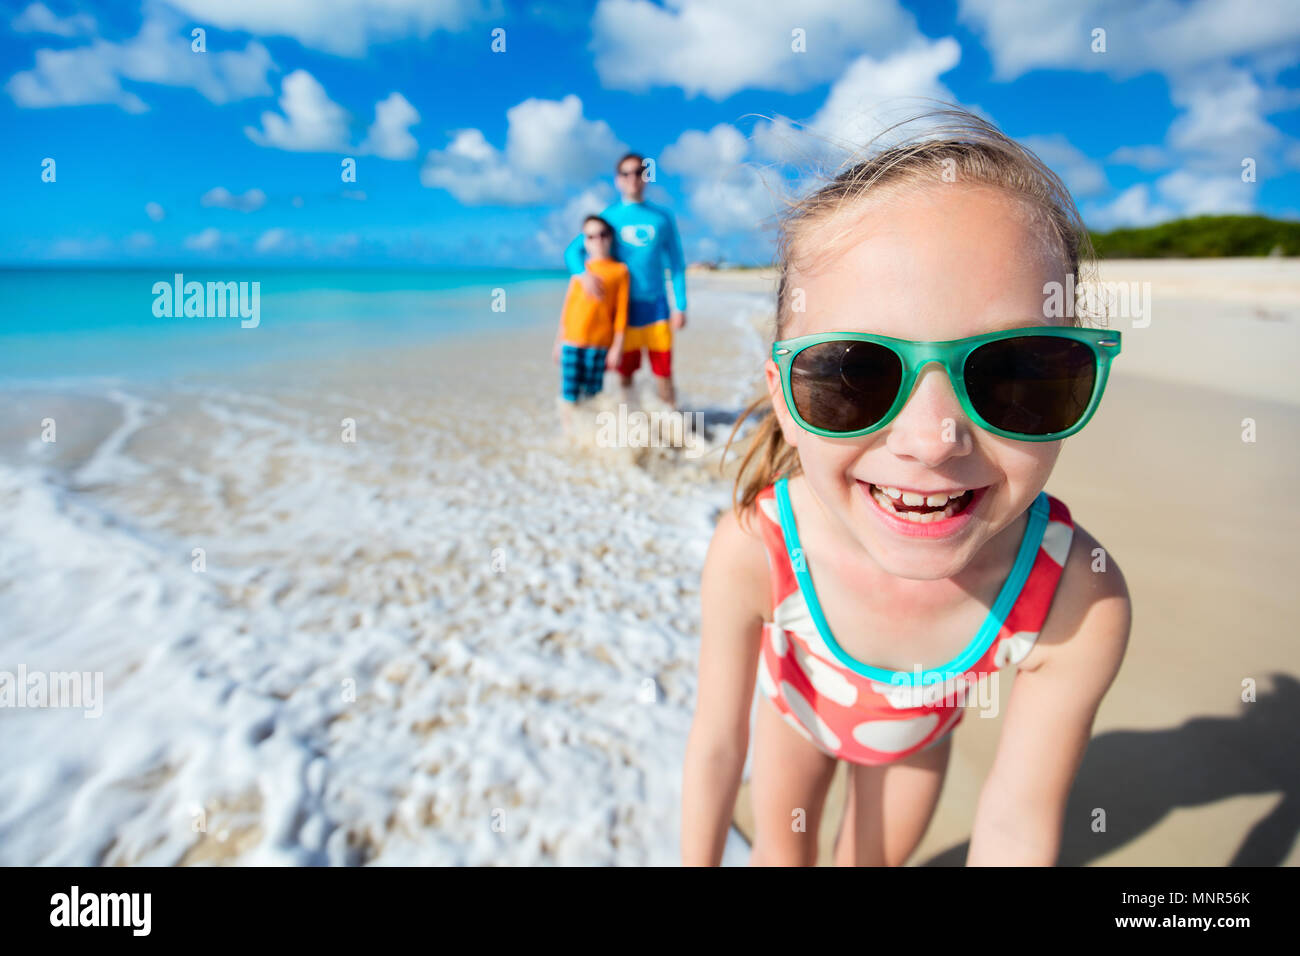 Little girl and her family father and brother enjoying beach vacation in Caribbean - Stock Image